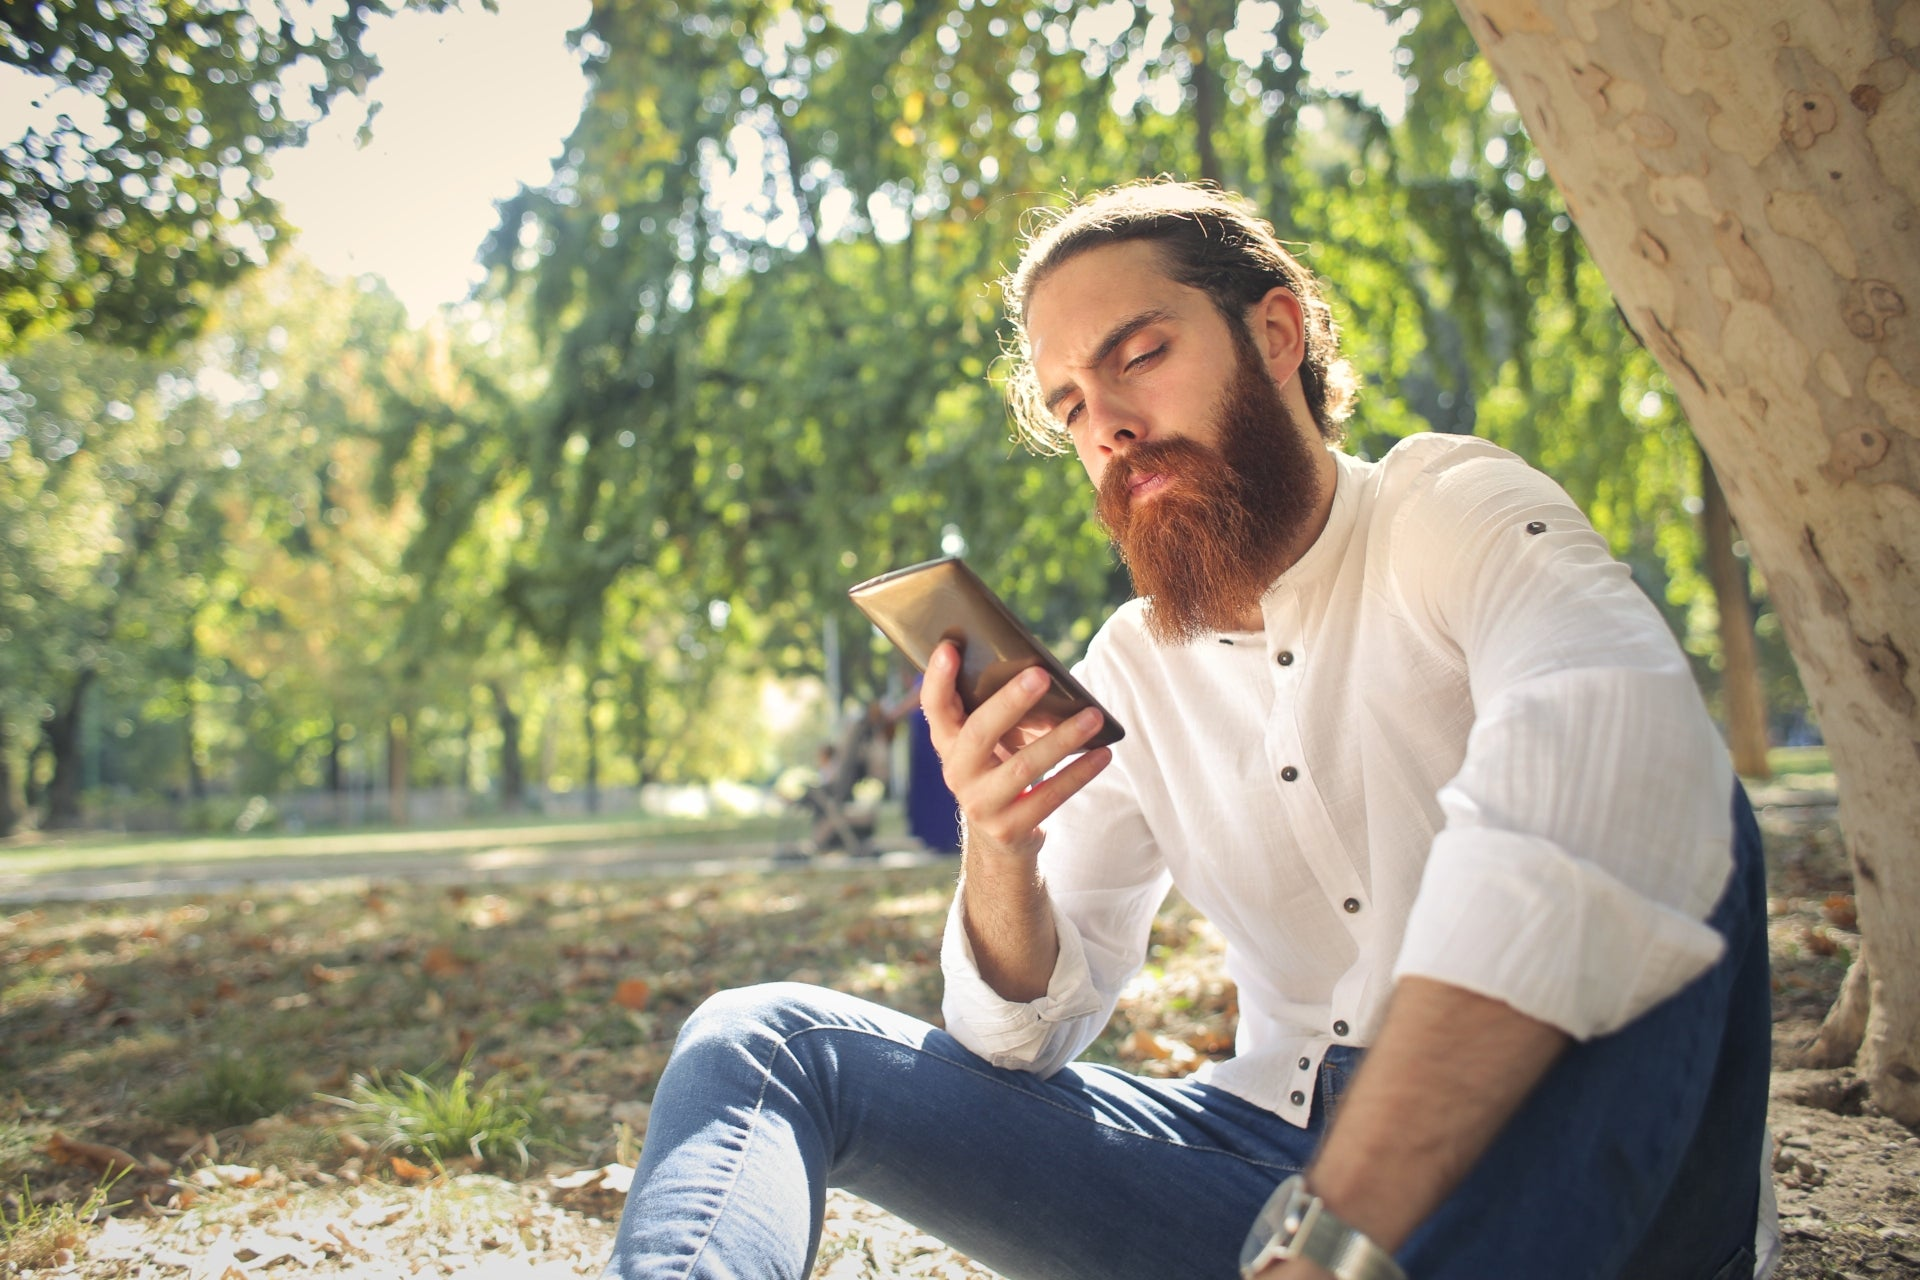 A young man with a beard sits on the ground looking at his phone considering how to become financially secure in 2020